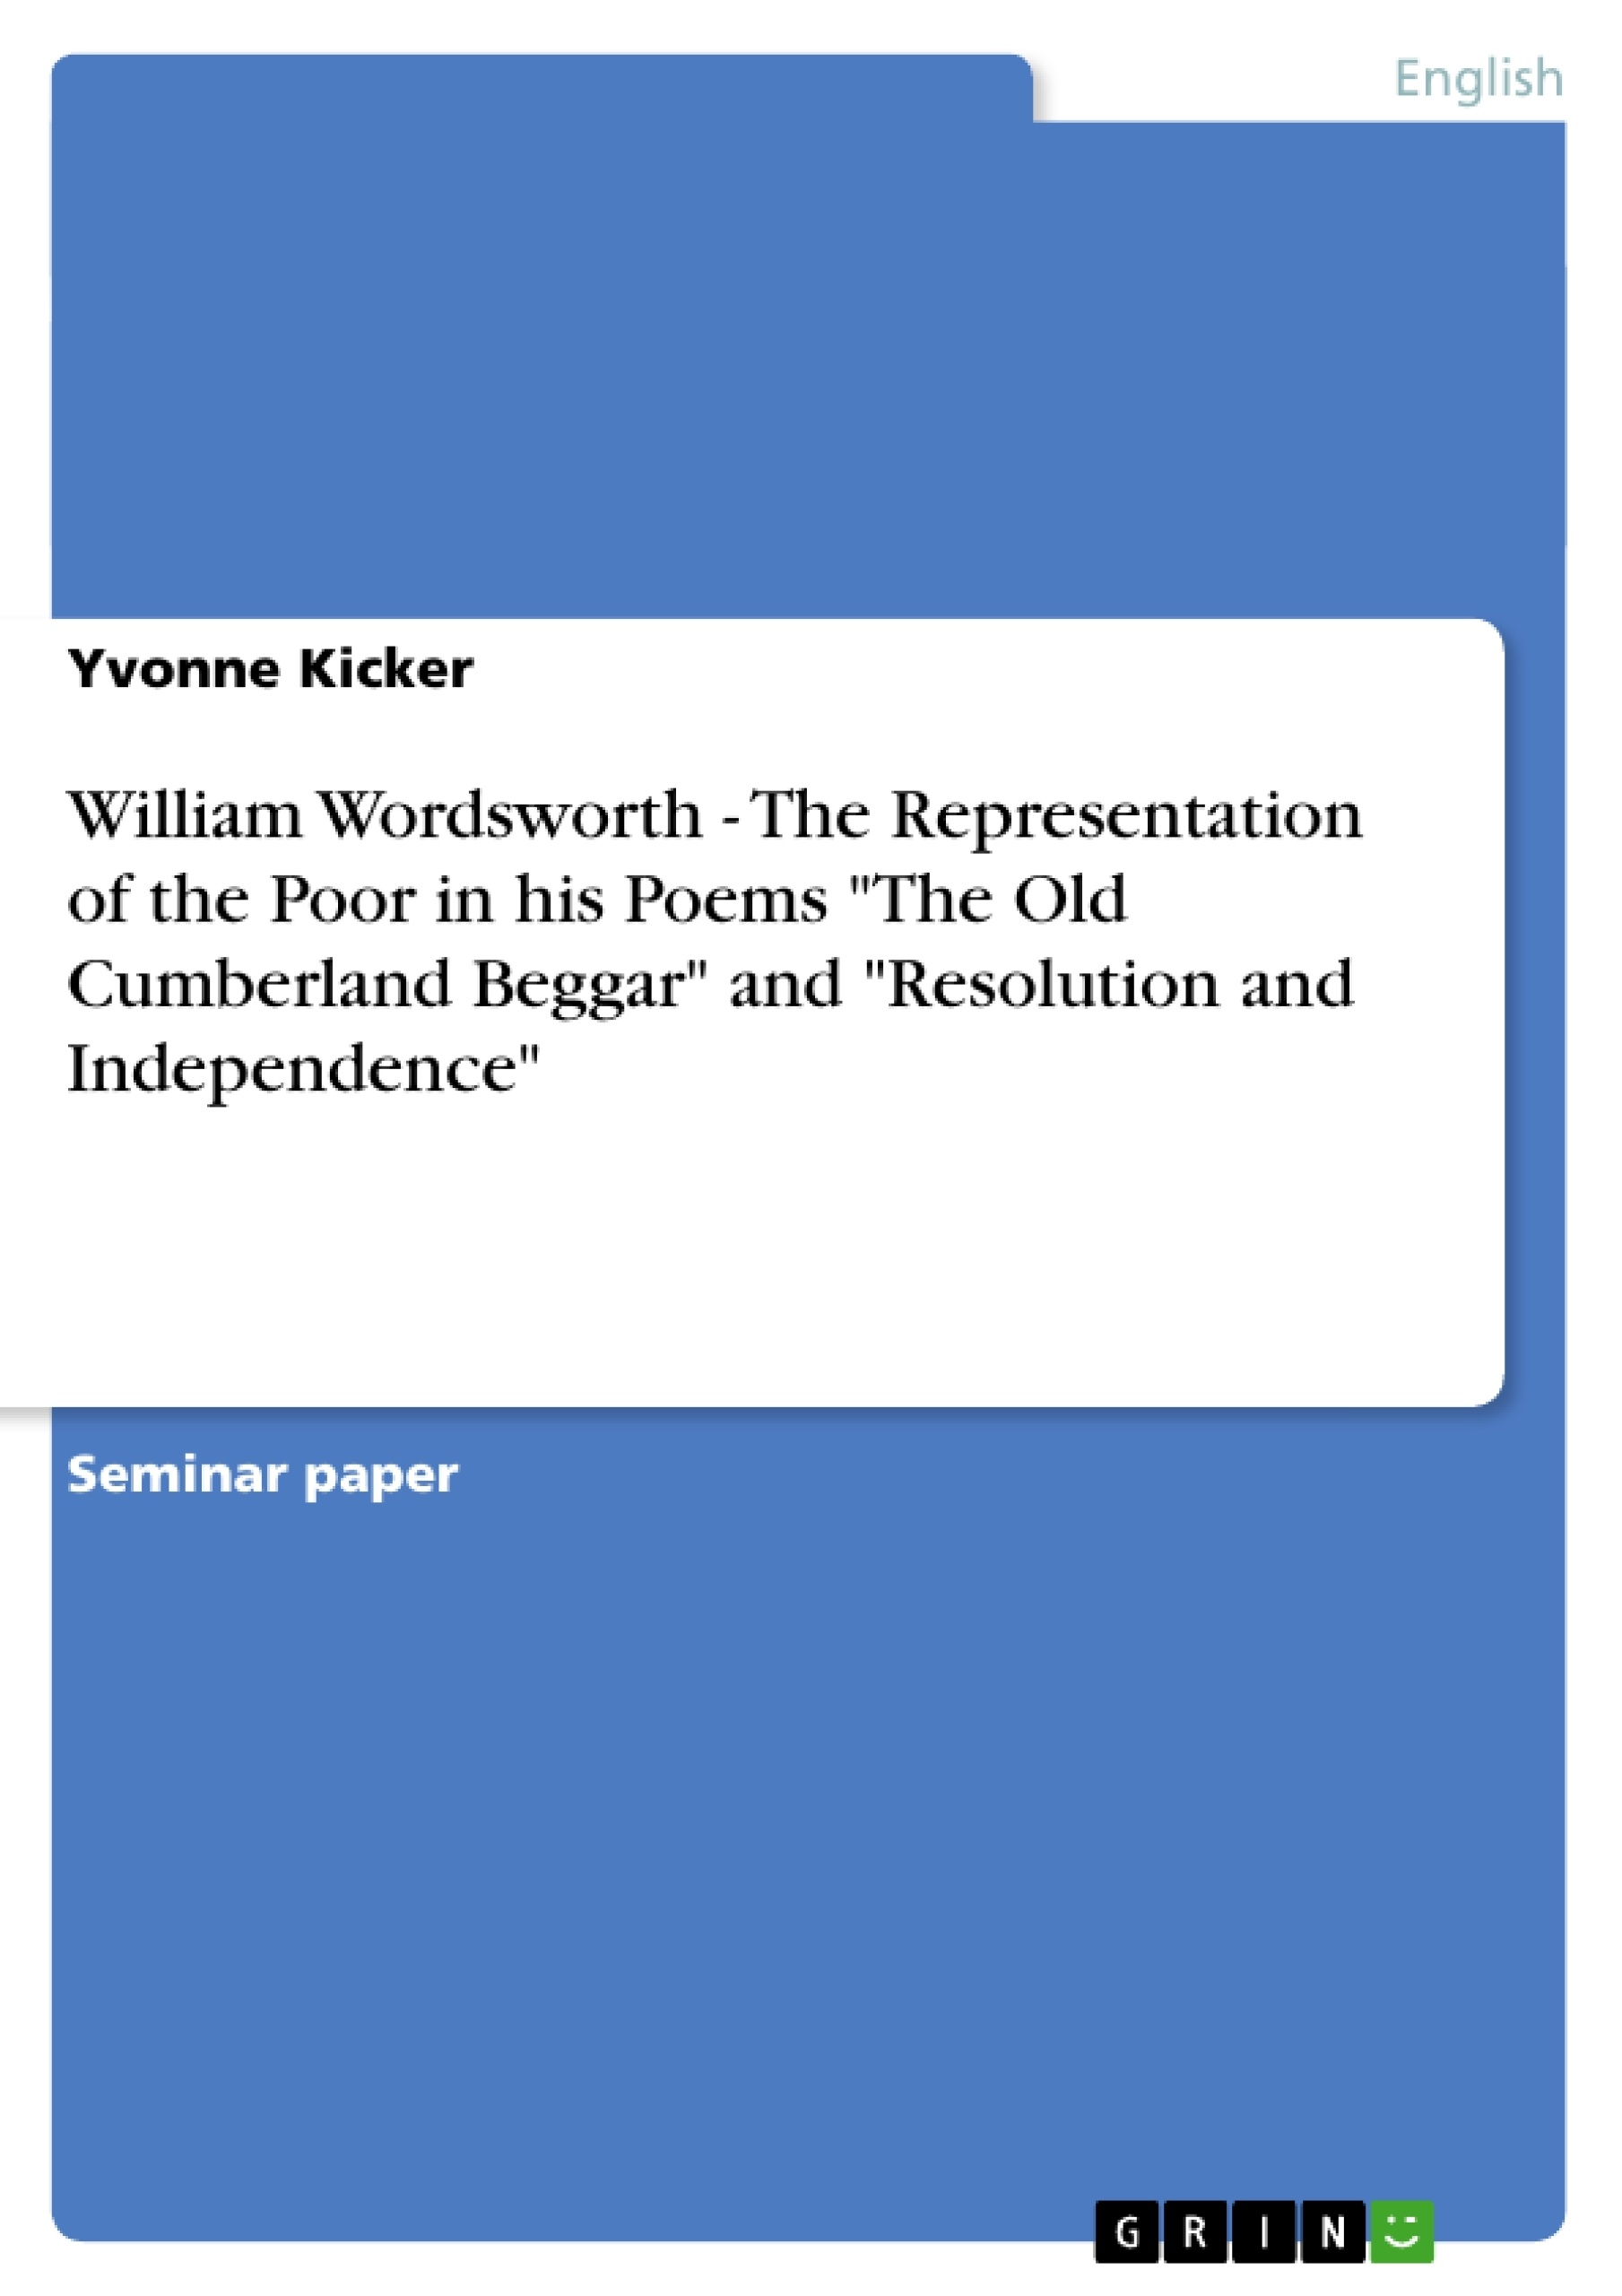 """Title: William Wordsworth - The Representation of the Poor in his Poems """"The Old Cumberland Beggar"""" and """"Resolution and Independence"""""""